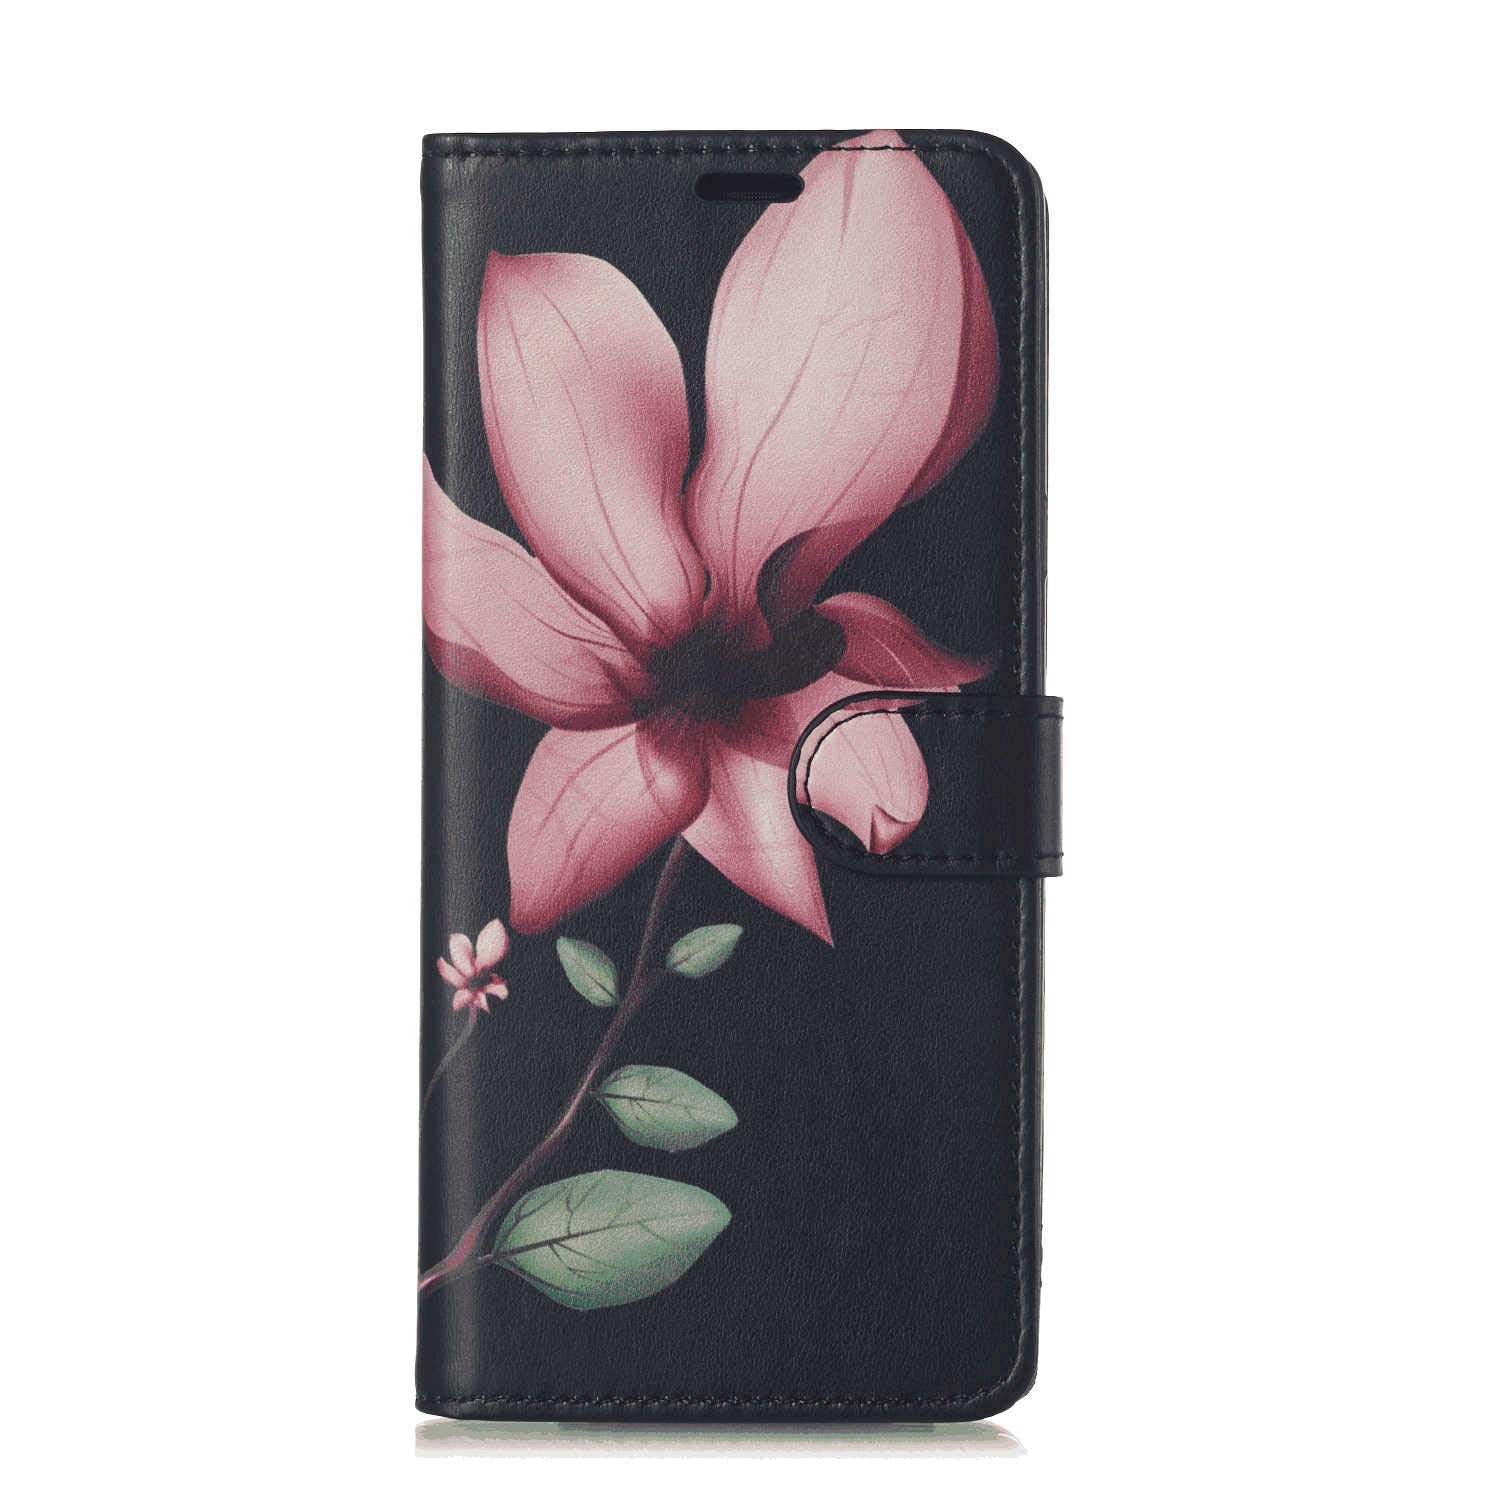 Samsung Galaxy S9 Plus Flip Case Cover for Leather Card Holders Mobile Phone case Premium Business Kickstand Flip Cover